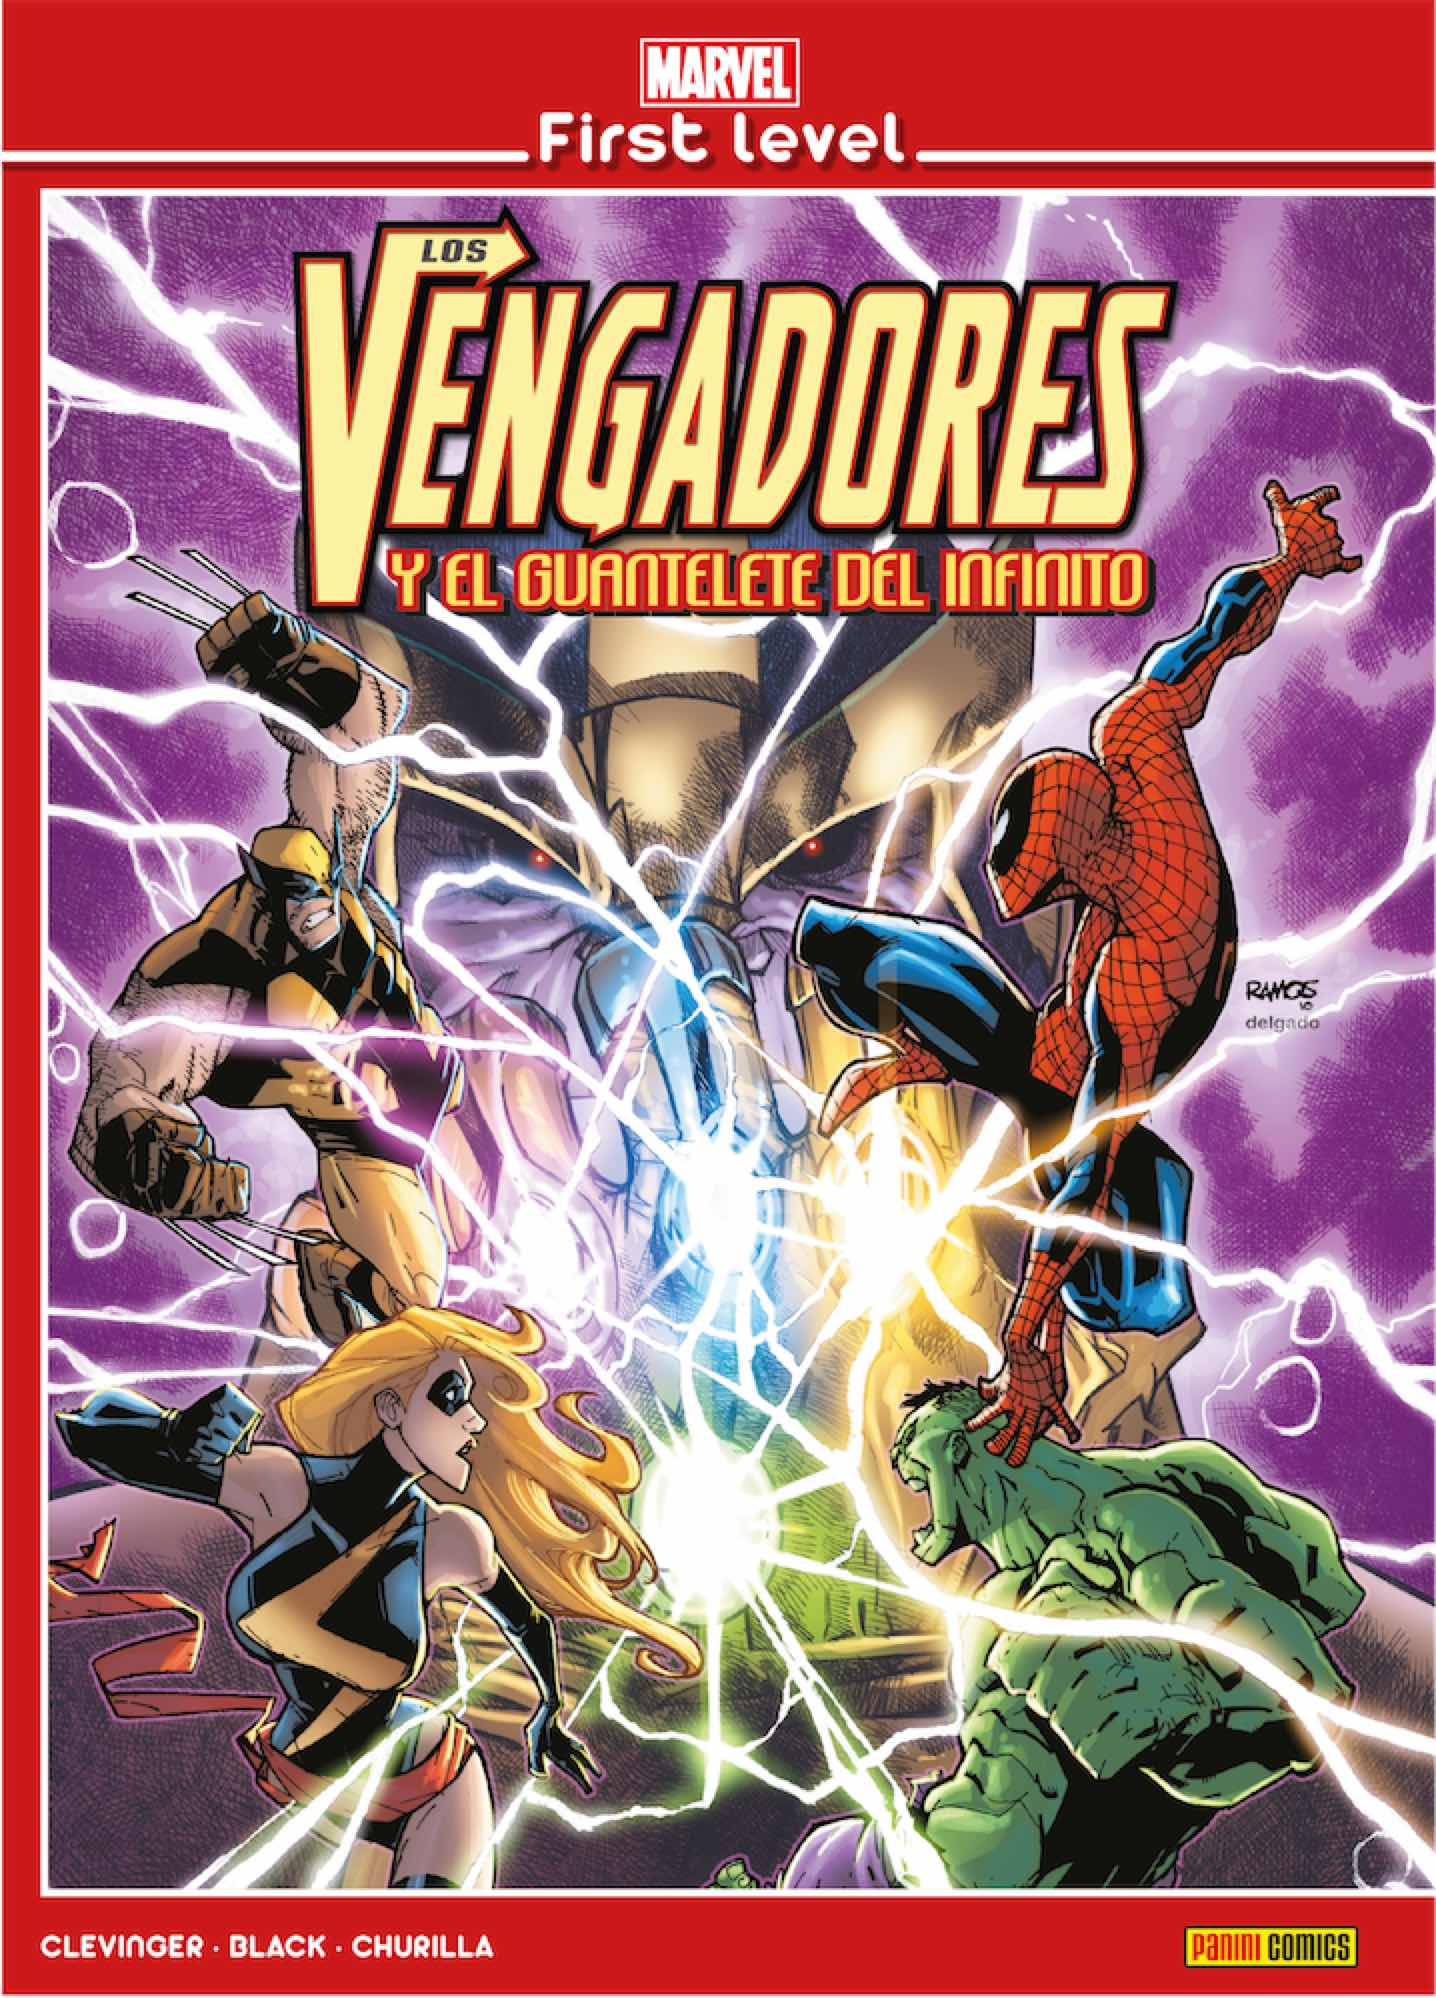 MARVEL FIRST LEVEL 01. LOS VENGADORES Y EL GUANTELETE DEL INFINITO